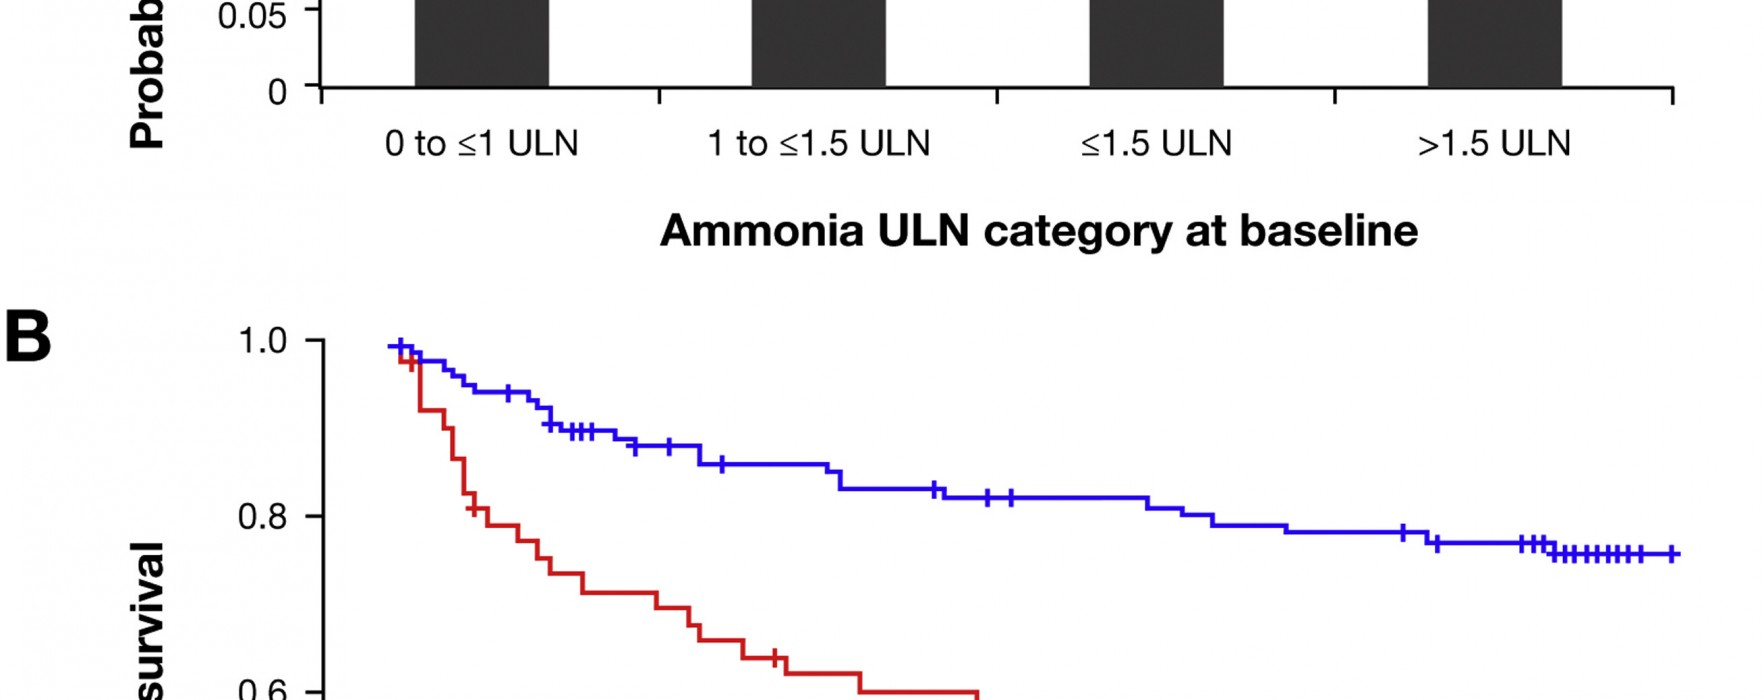 Can Blood Levels of Ammonia Predict Risk and Frequency of Hepatic Encephalopathy in Patients With Cirrhosis?